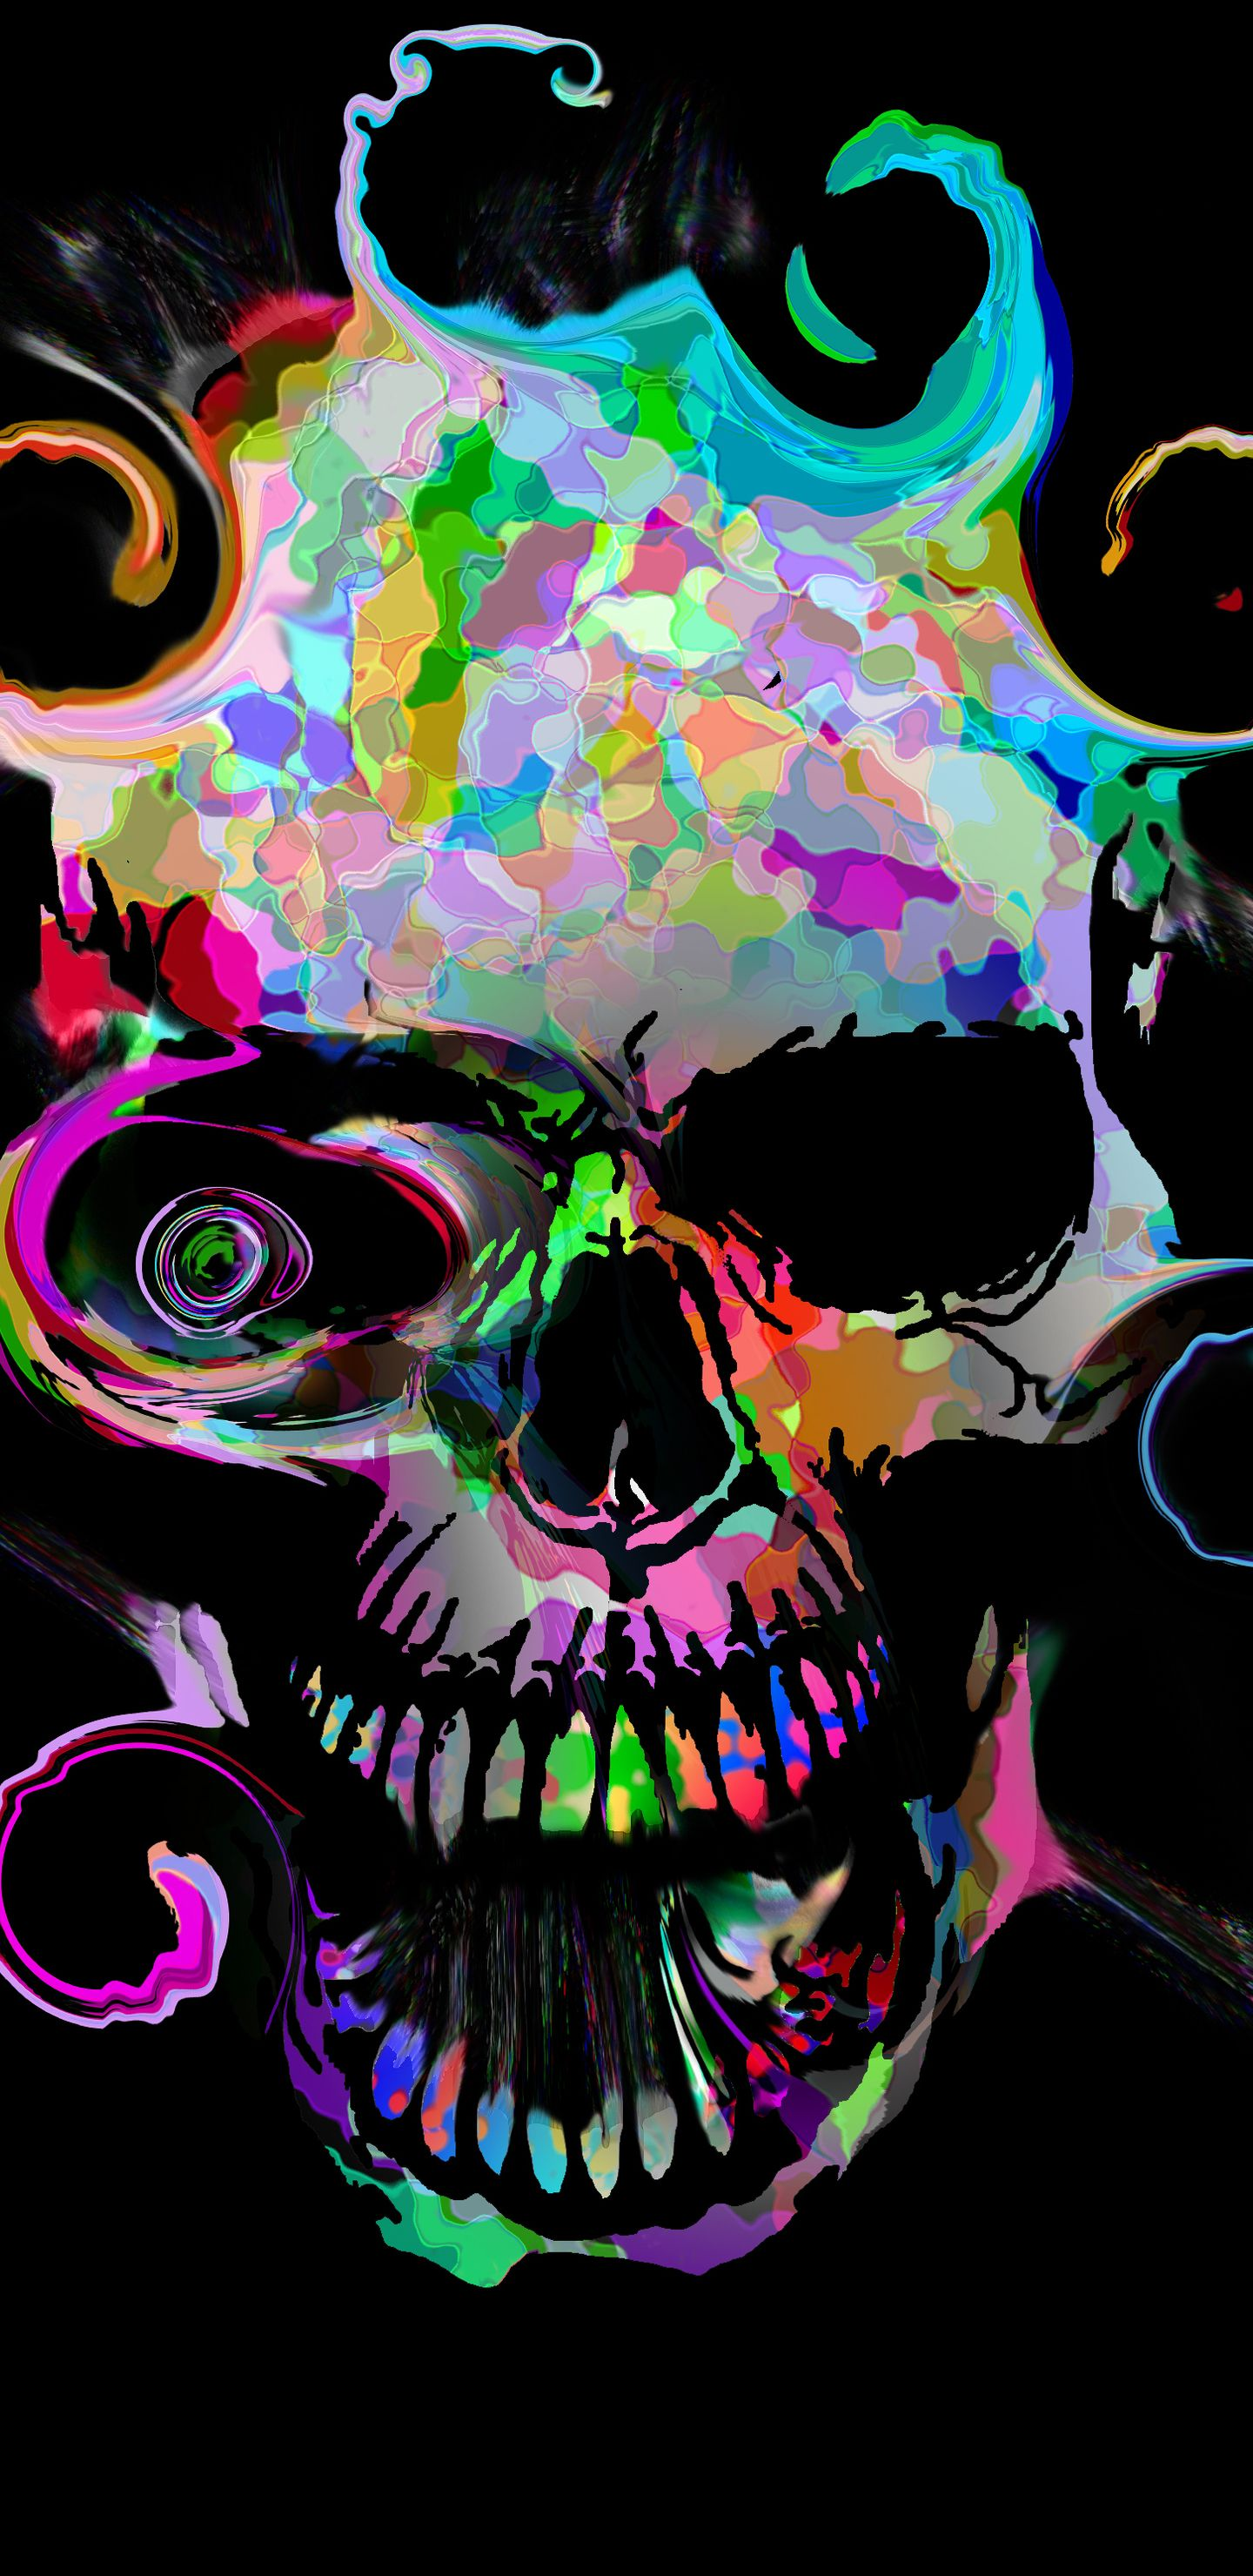 Skull Samsung Galaxy Wallpapers Top Free Skull Samsung Galaxy Backgrounds Wallpaperaccess